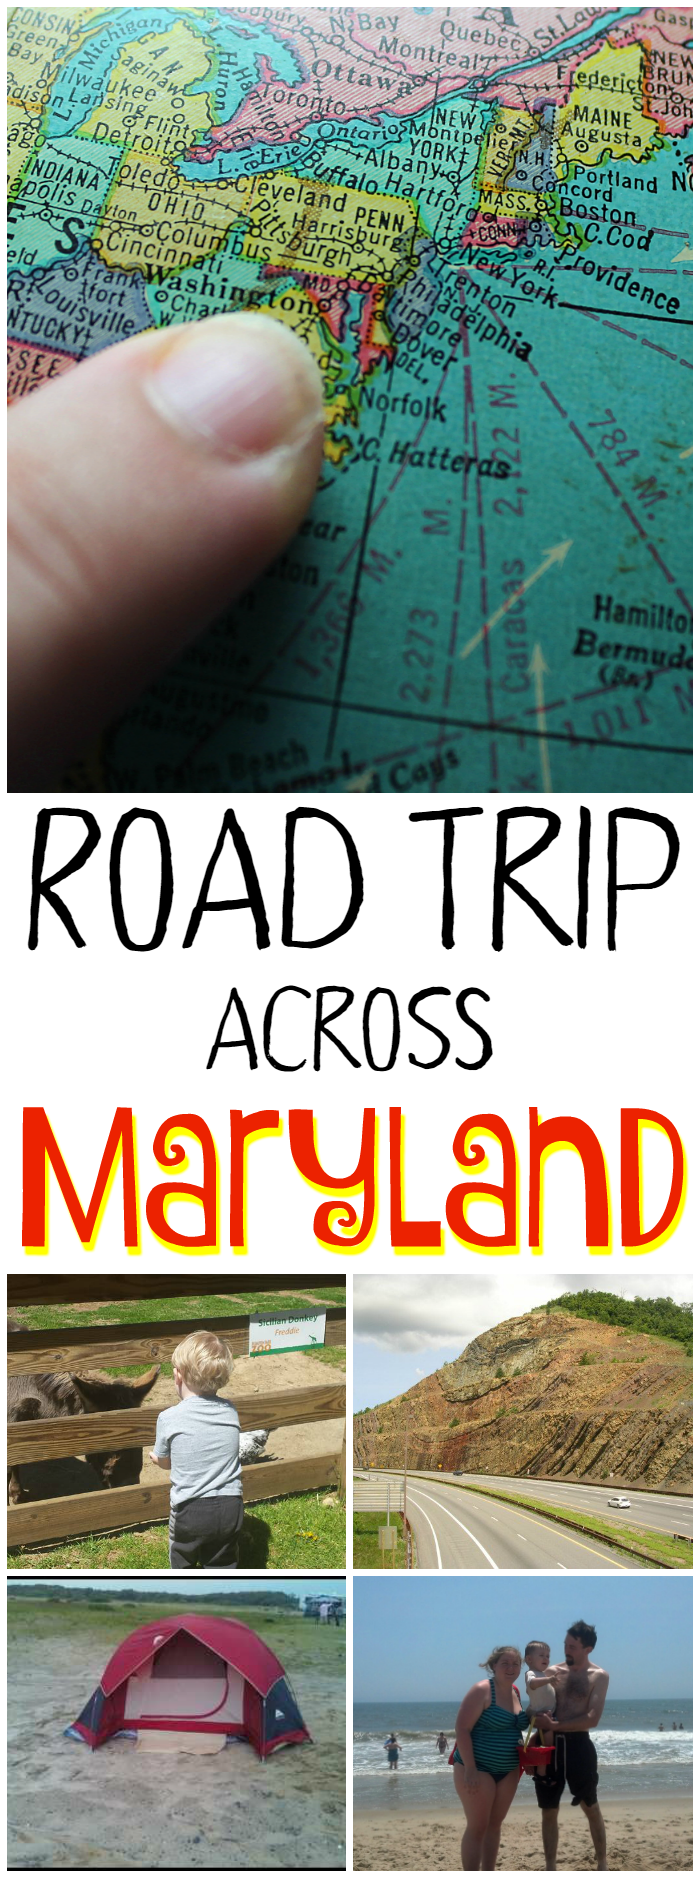 Road Trip Across Maryland - Take a road trip across Maryland for all kinds of family fun! Beaches, history, delicious seafood, adventure, and more!